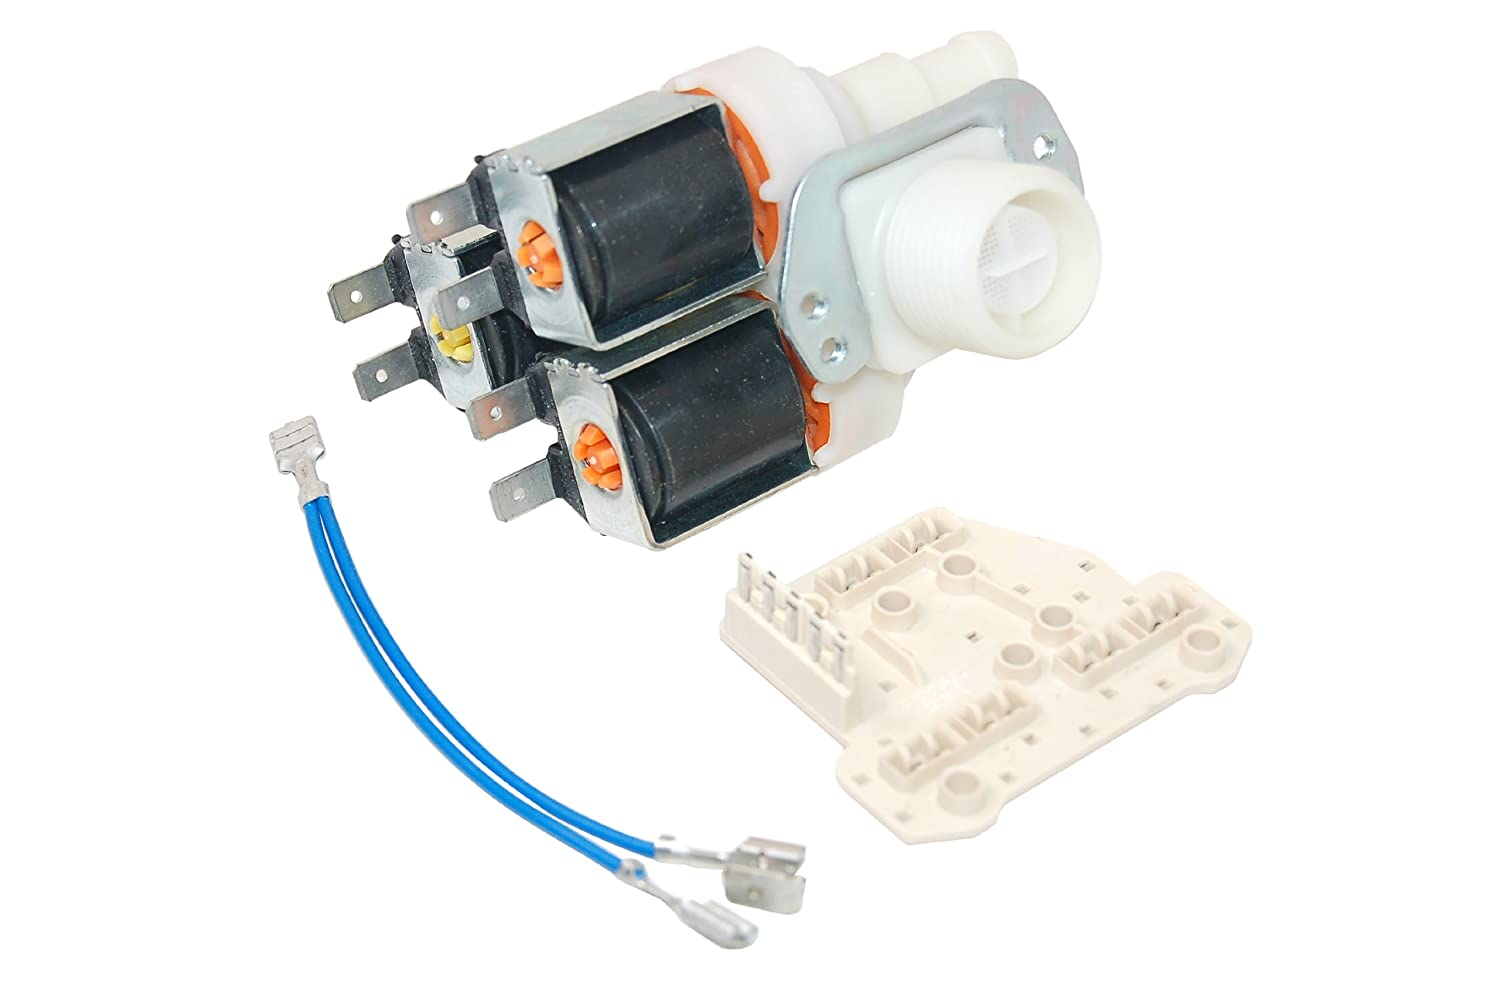 71lOAWq3A6L._SL1500_ miele washing machine fill valve genuine part number 1678013 miele wiring diagram at crackthecode.co